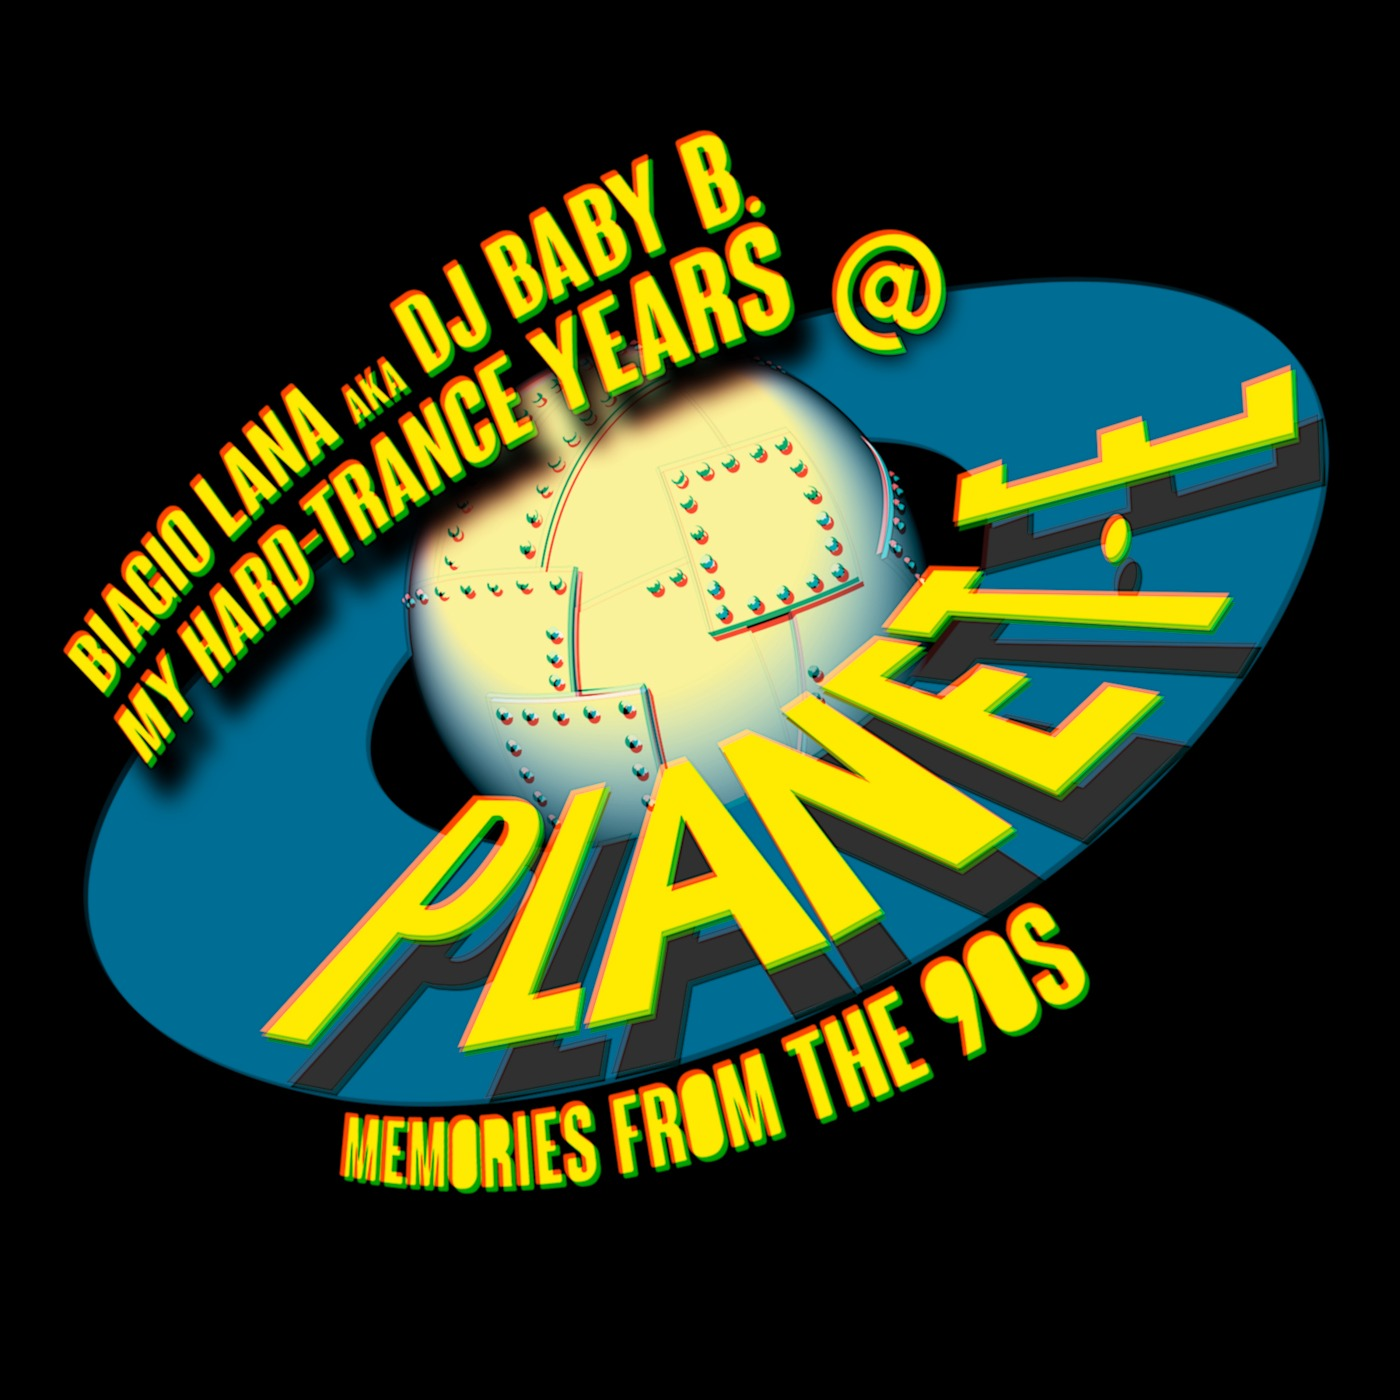 PLANET E > MEMORIES FROM THE 90S - Biagio Lana / Podcast